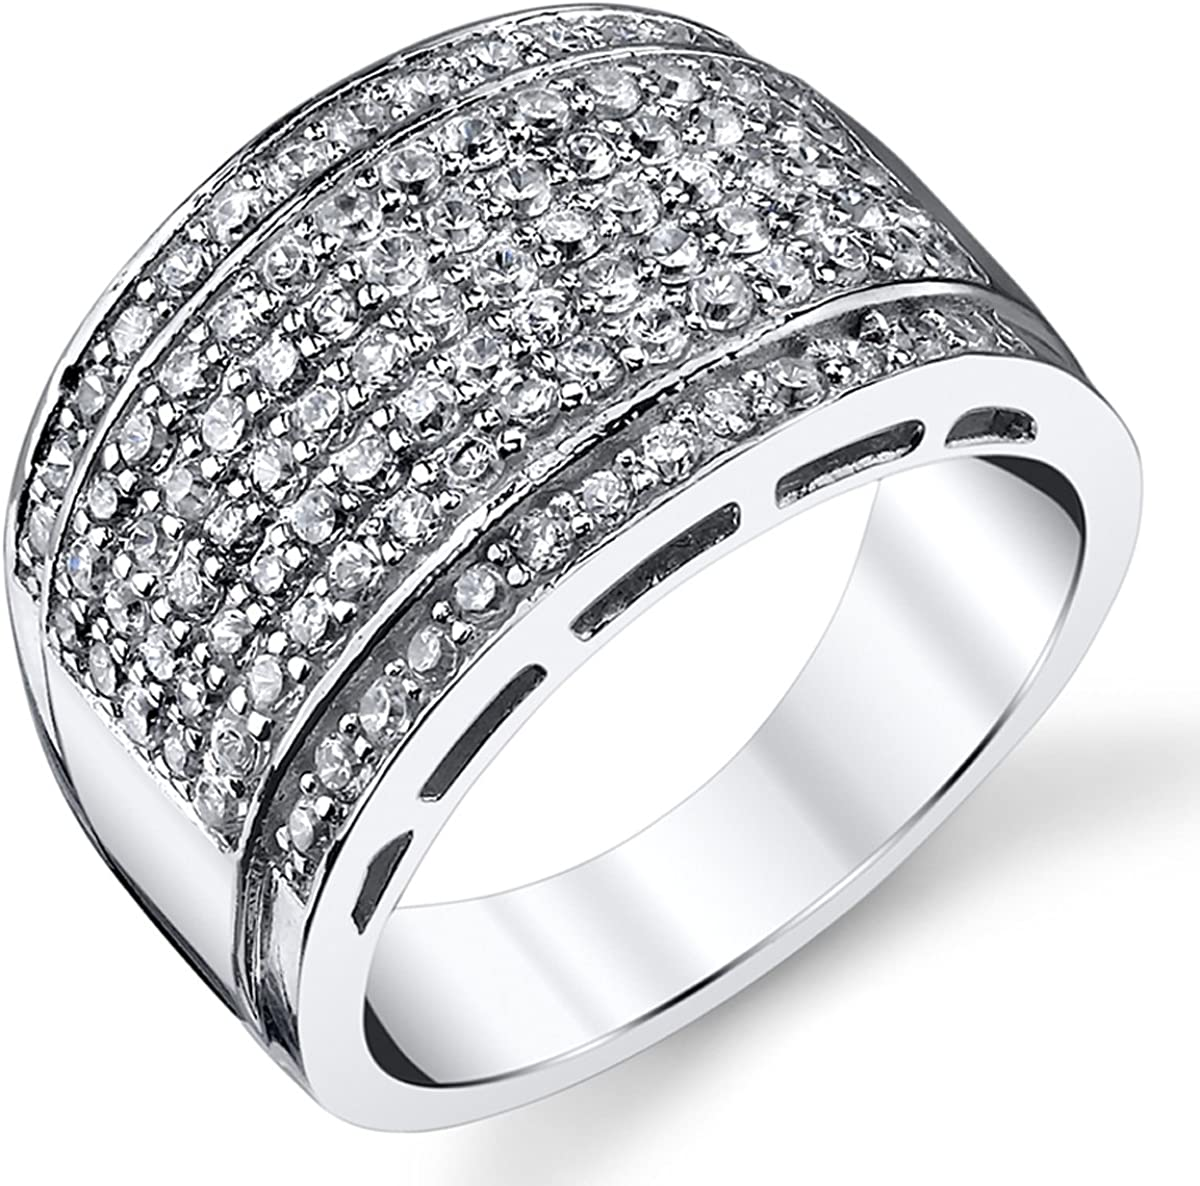 Sterling Silver Men's 4 years warranty High Polish Micro W Band Ring Spasm price Pave Wedding